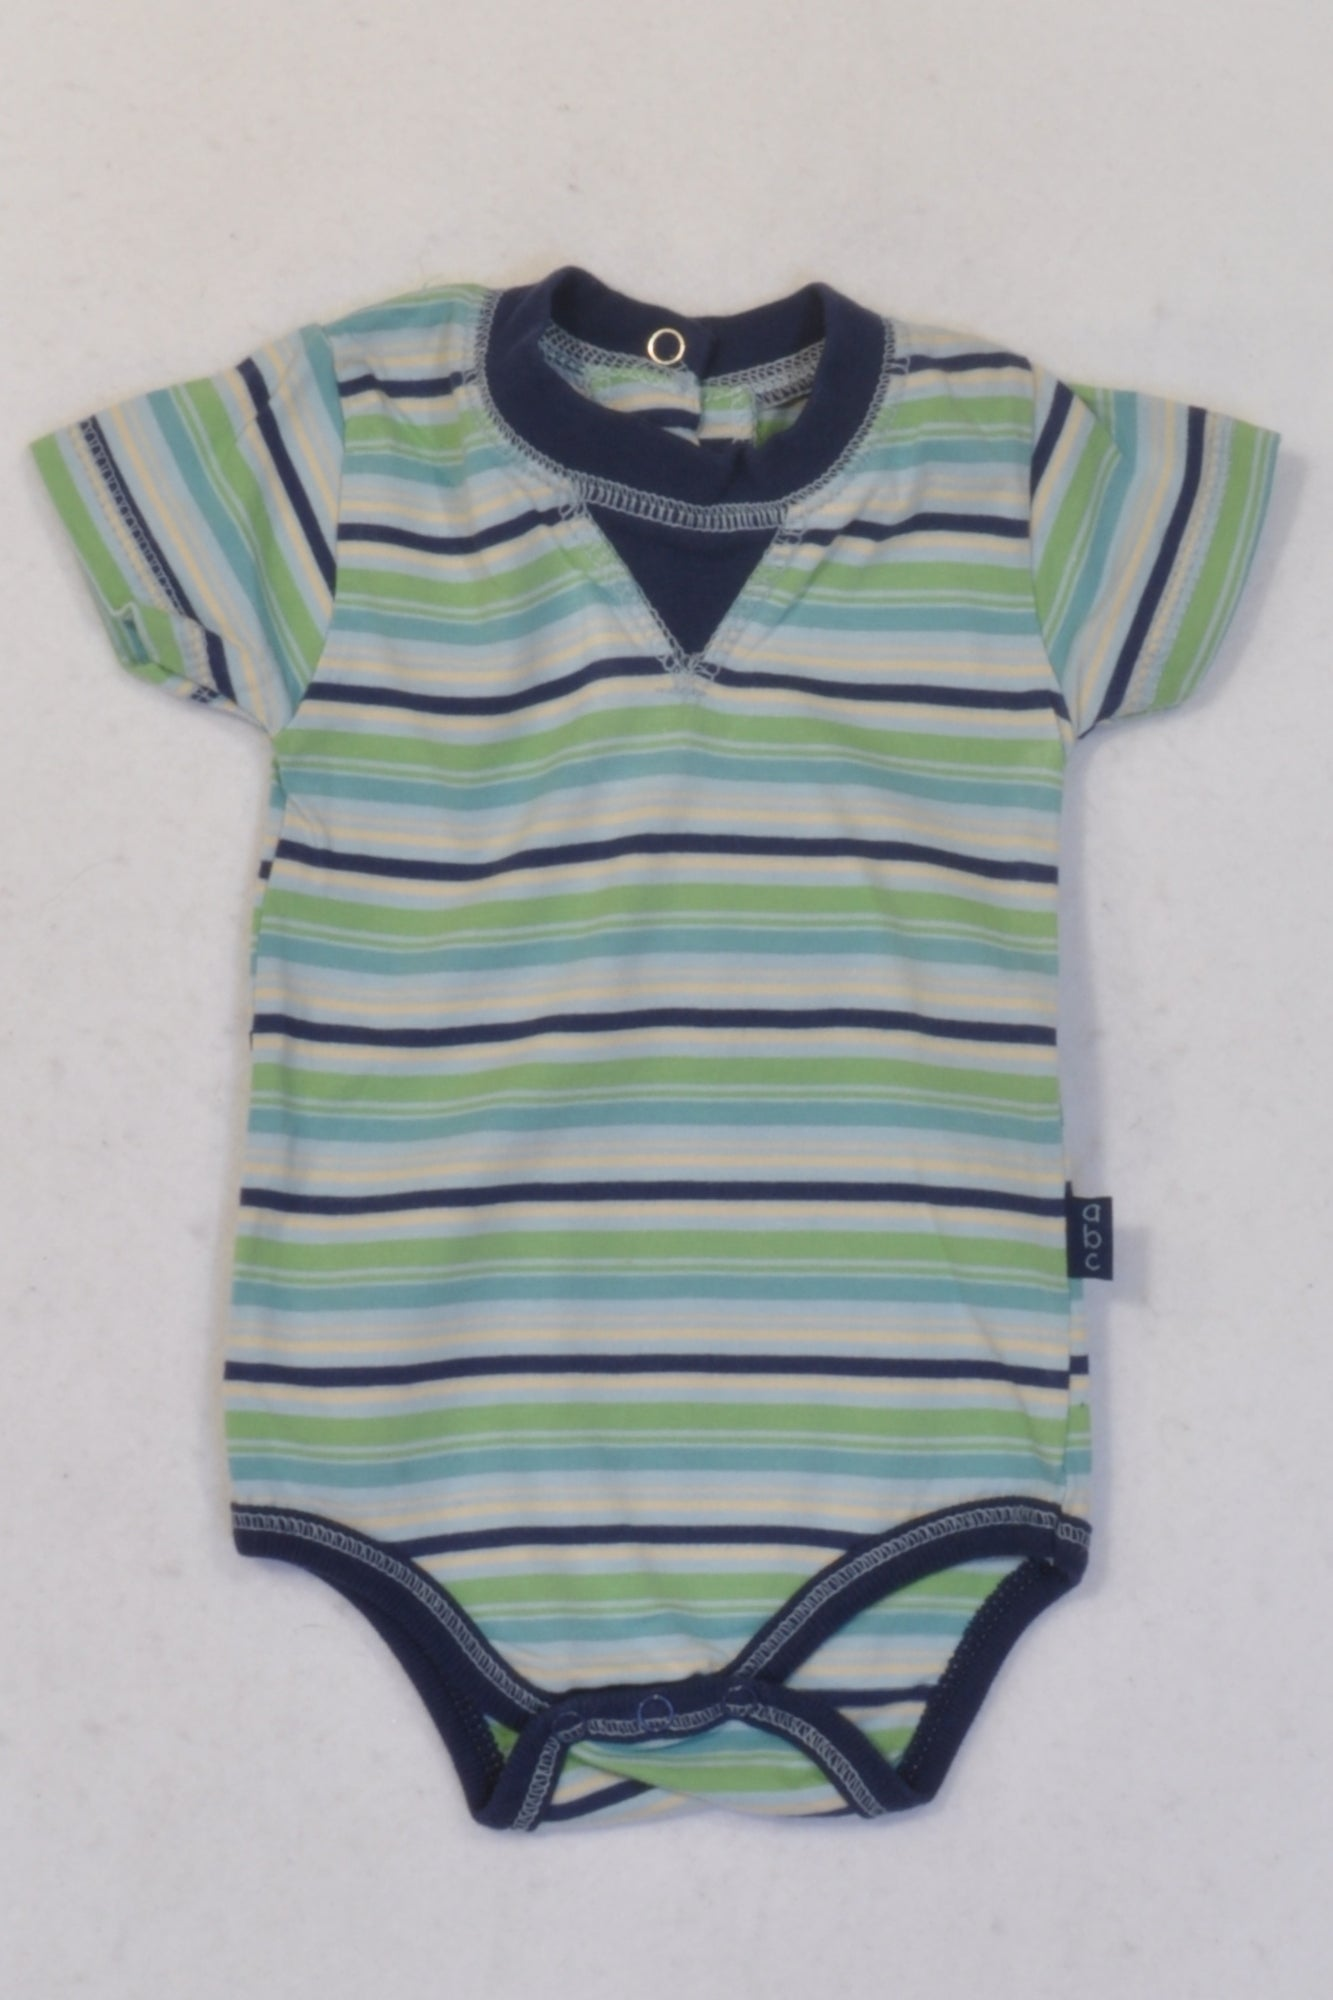 Ackermans Navy & Green Stripe Baby Grow Boys 3-6 months